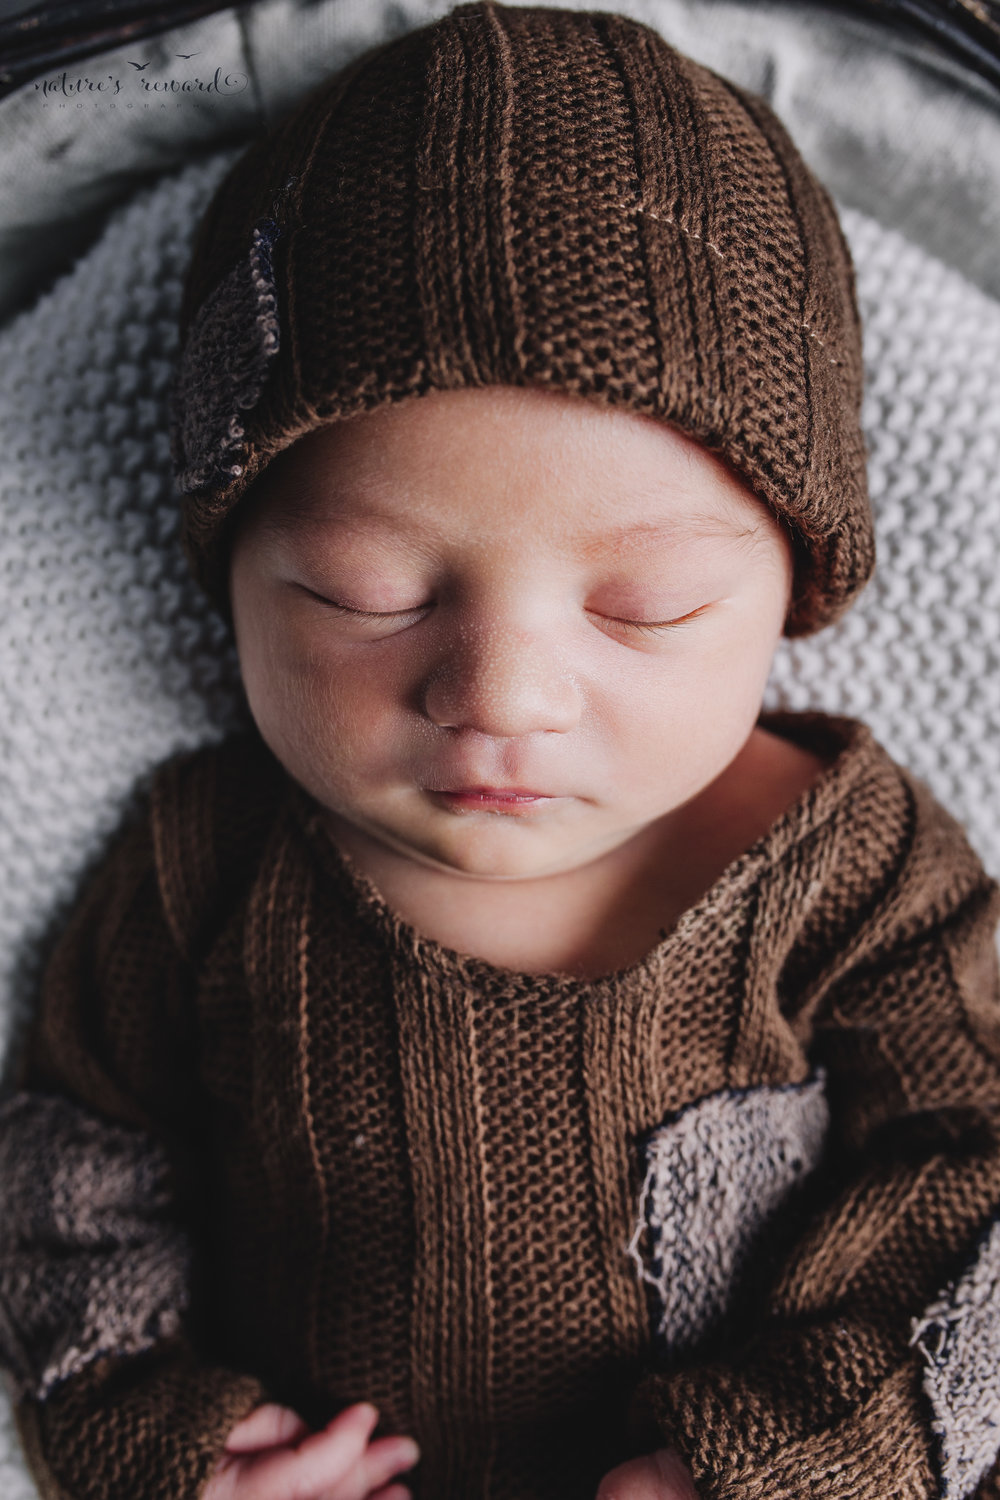 Newborn baby boy portrait wearing a brown outfit and matching cap by Nature's Reward Photography